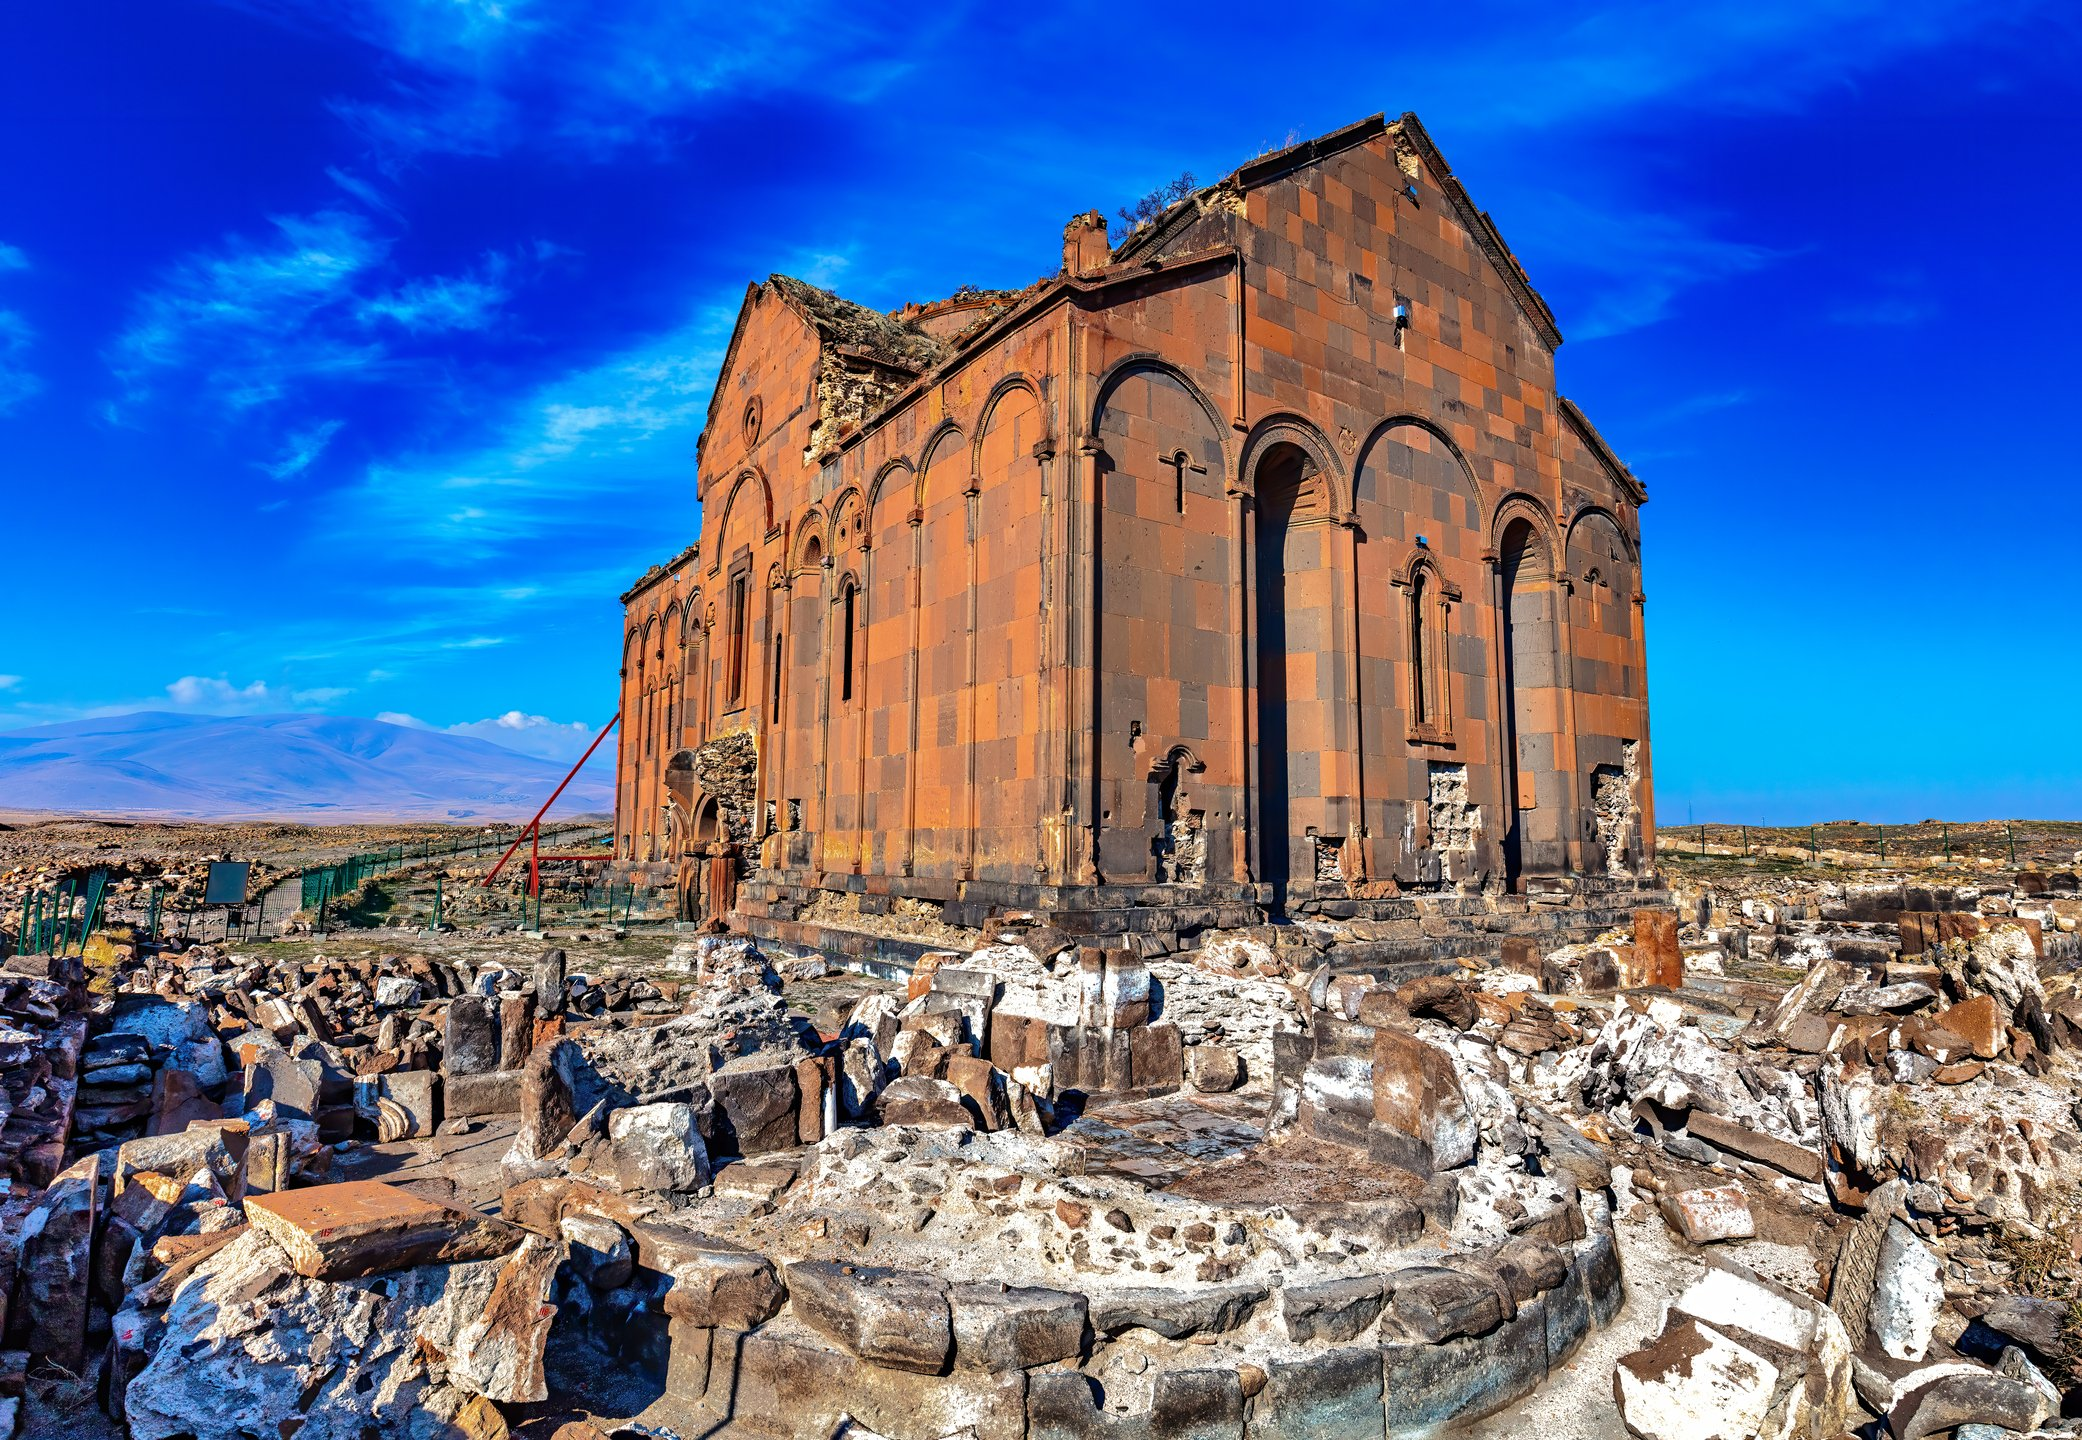 The ruins of the Cathedral of Ani are seen on the Turkish-Armenian border. (iStock Photo)